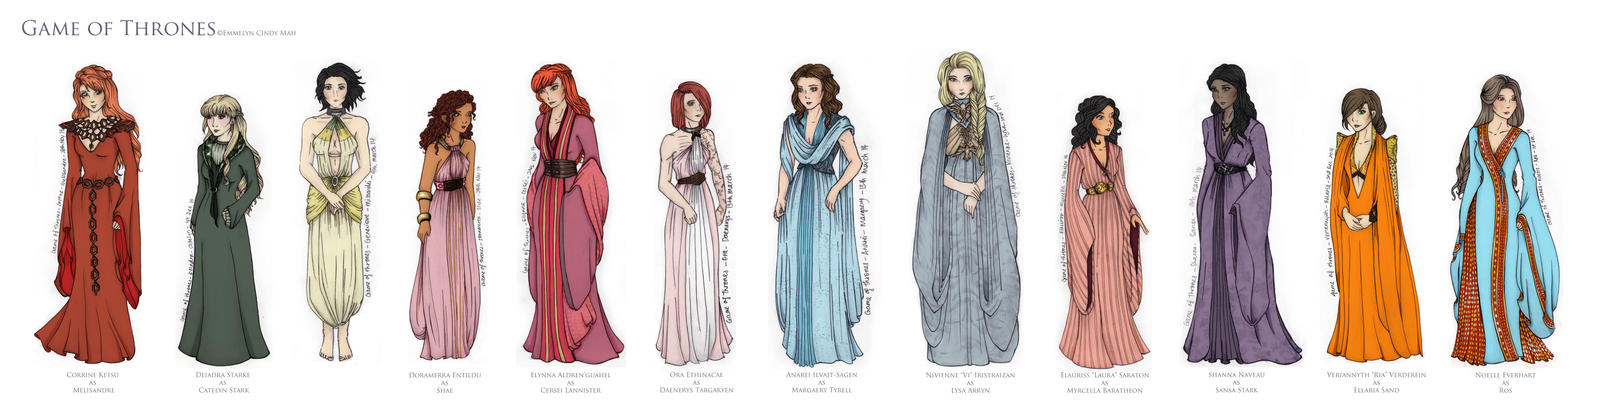 Costume Project - Game of Thrones (no background)